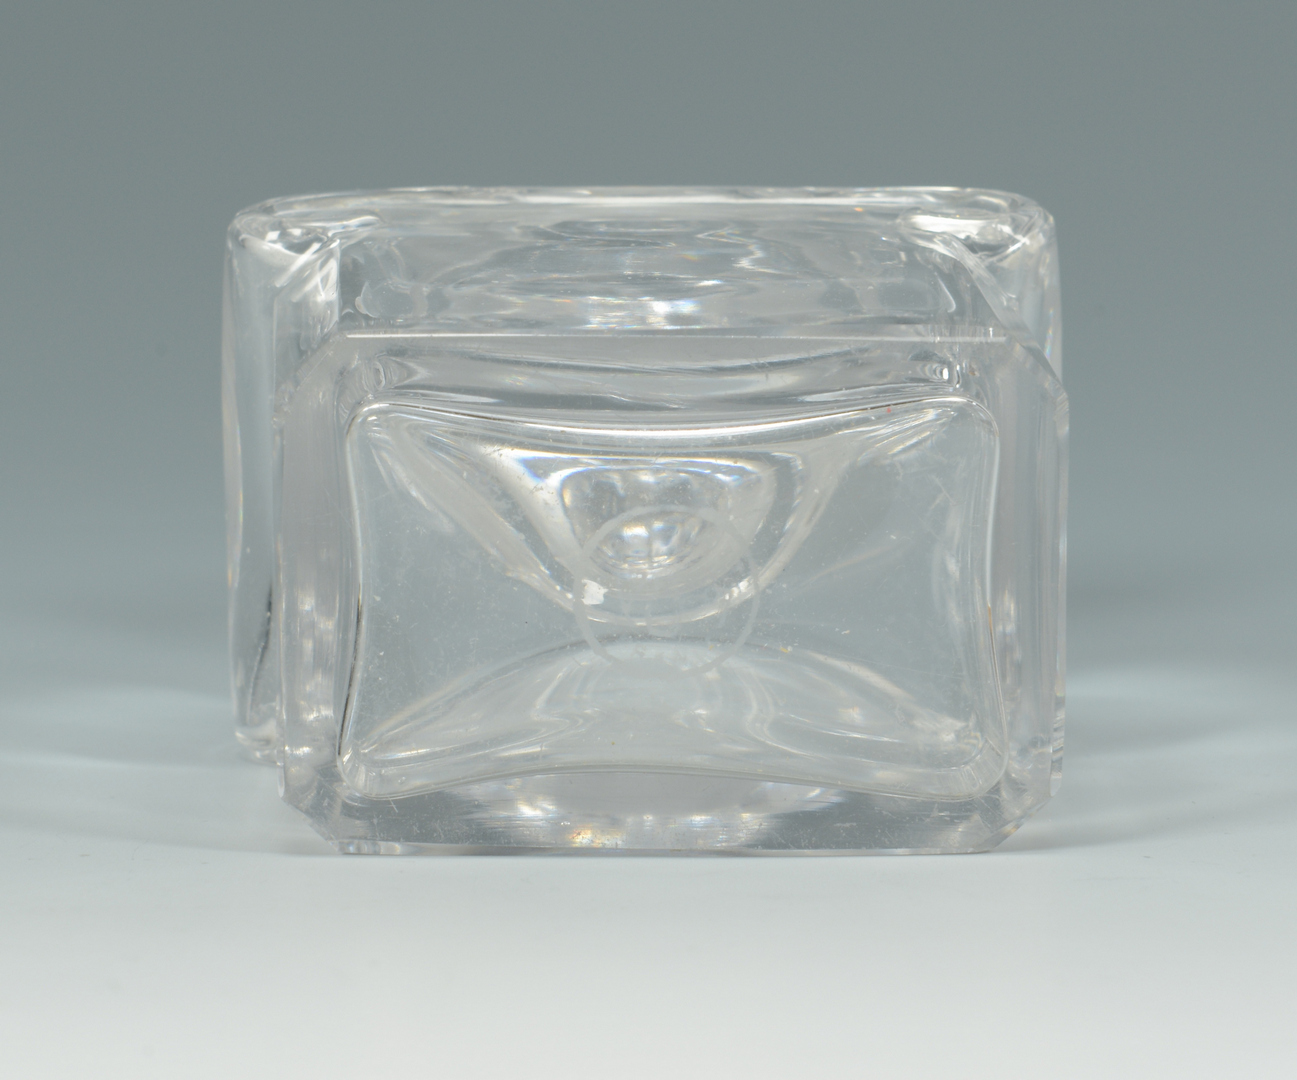 Lot 3088122: 3 Decorative items inc. Coromandel Box, Baccarat b